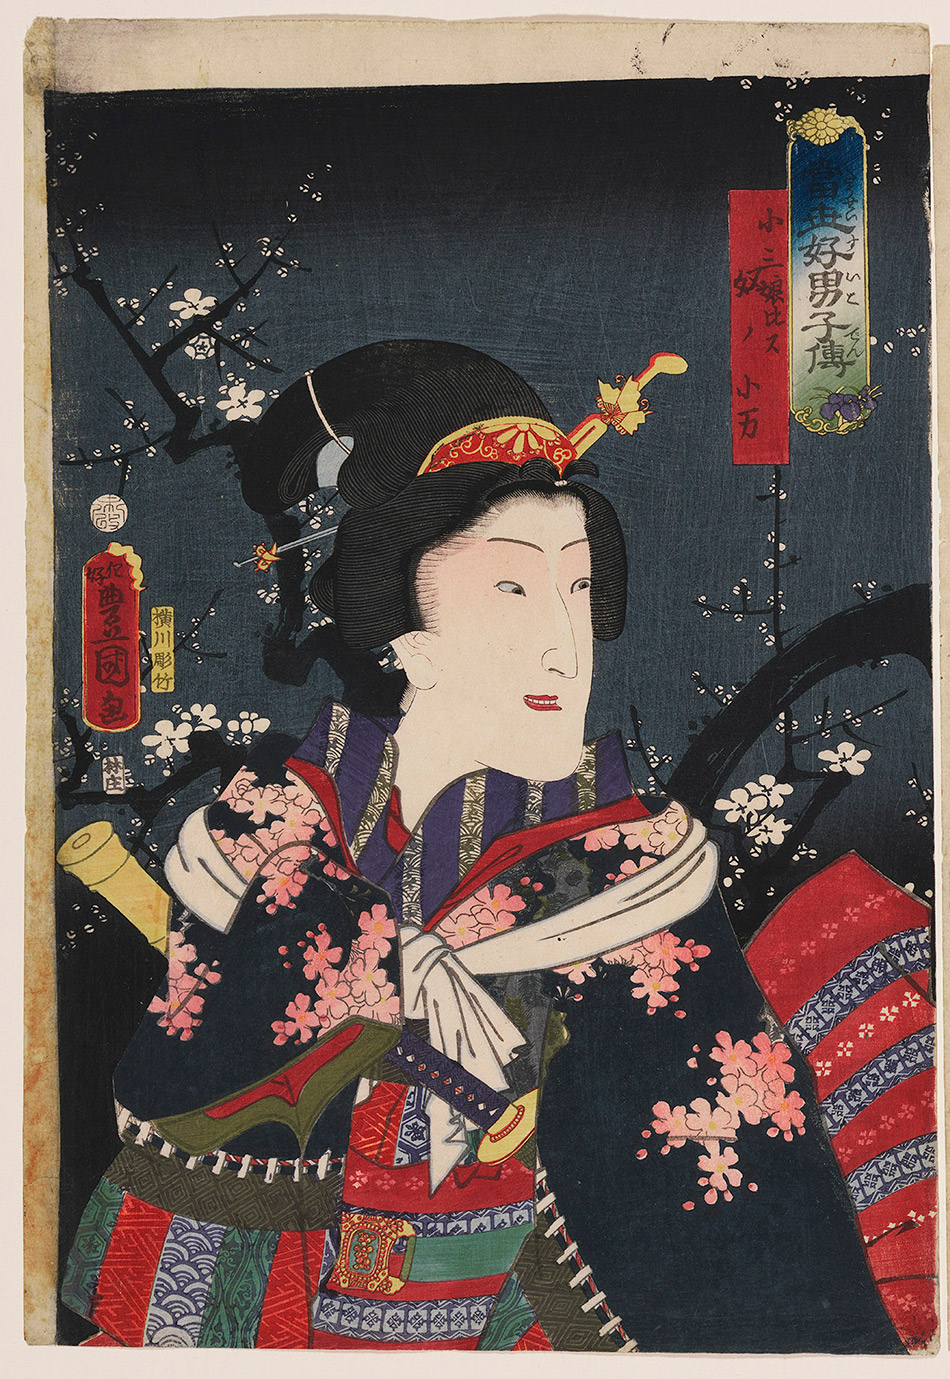 museum-of-fine-arts-boston_12.-Plum-Actor-a_Utagawa-Kunisada